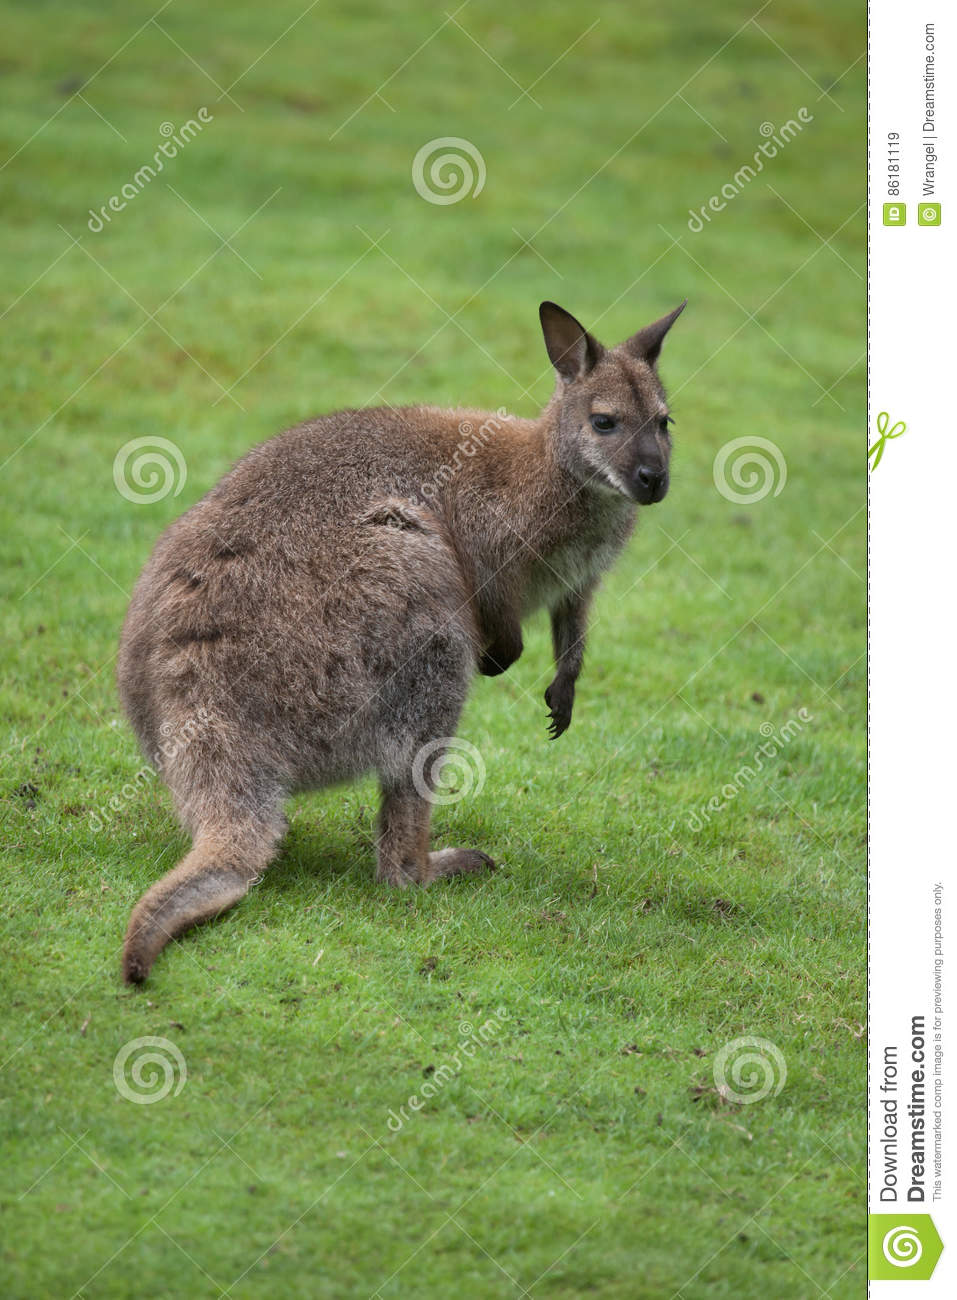 Red-necked Wallaby clipart #8, Download drawings